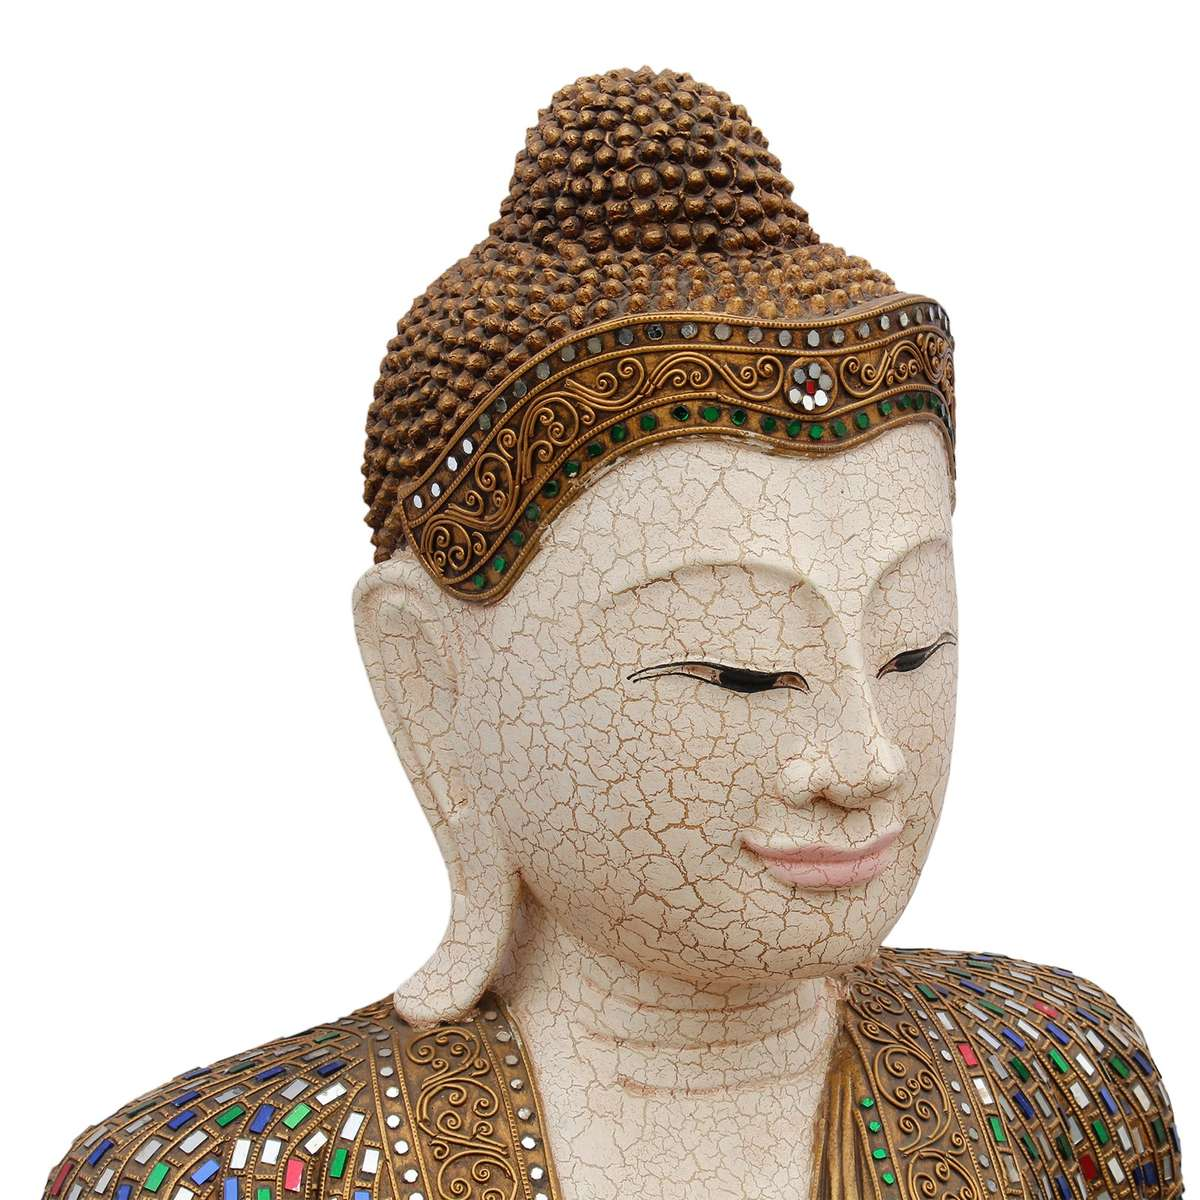 buddha statue sitzend figur 100 cm holz gold glas mosaik meditierend gold skulptur dekoration. Black Bedroom Furniture Sets. Home Design Ideas